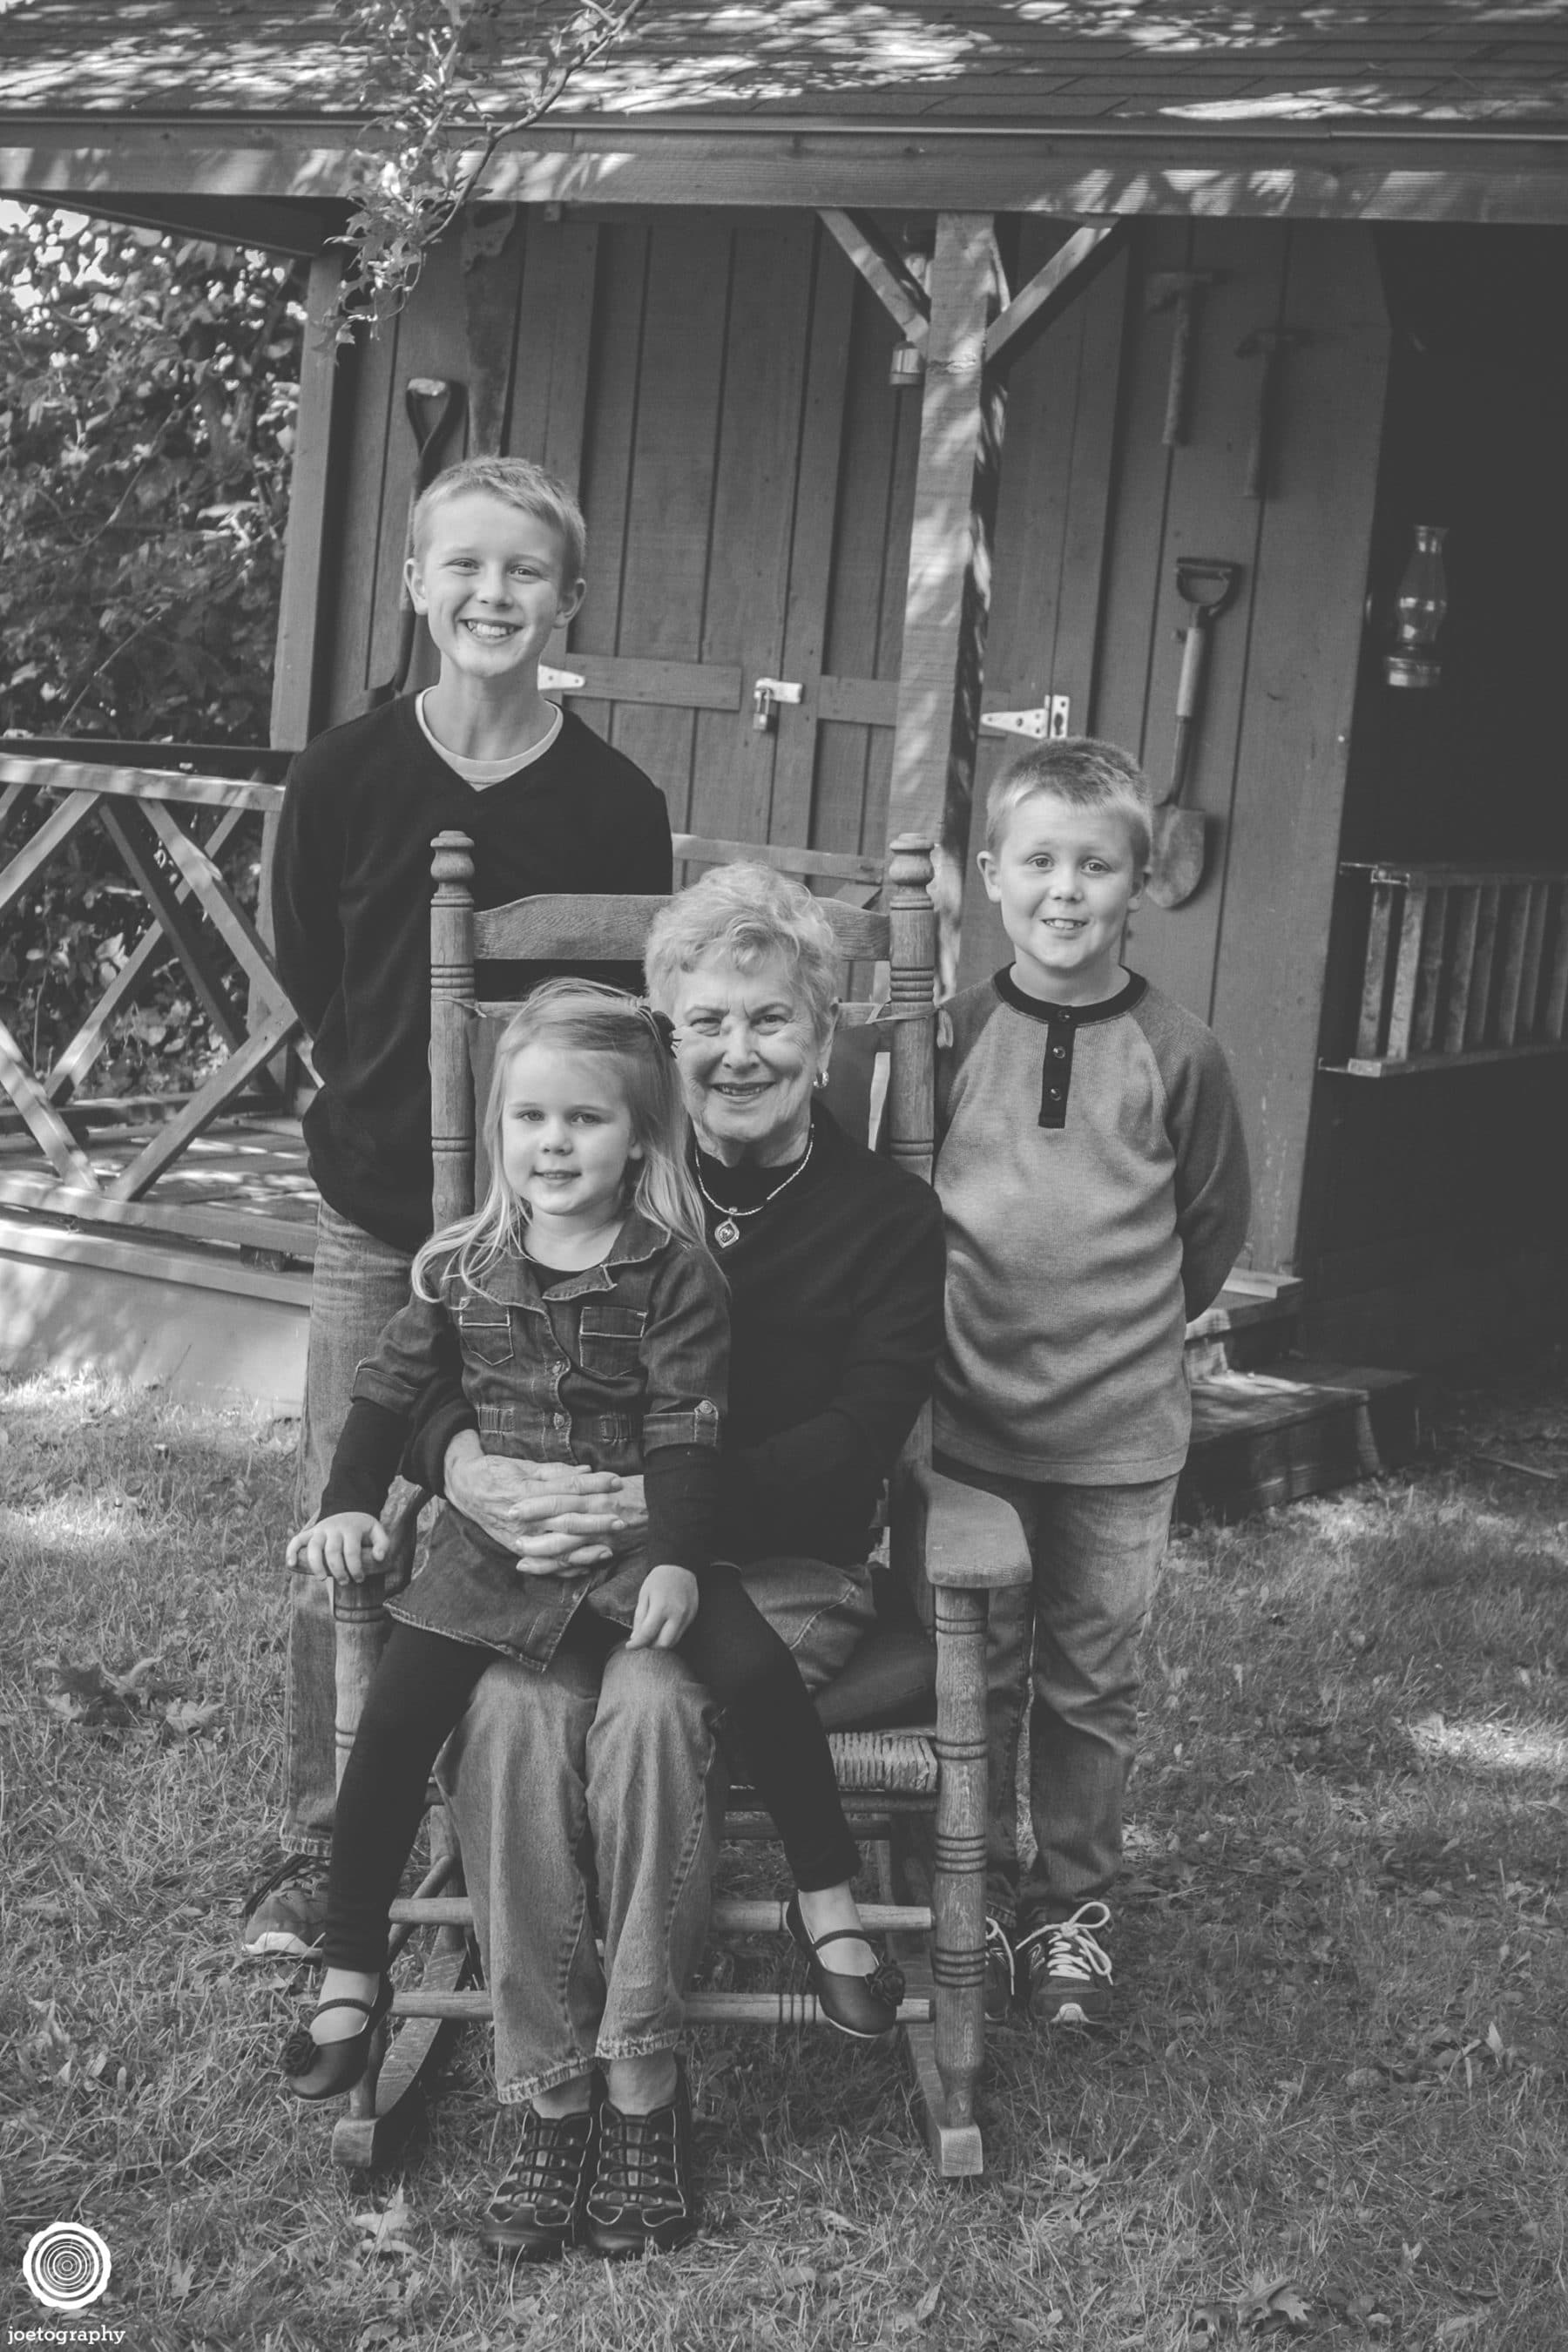 evans-family-photographs-westfield-indiana-19